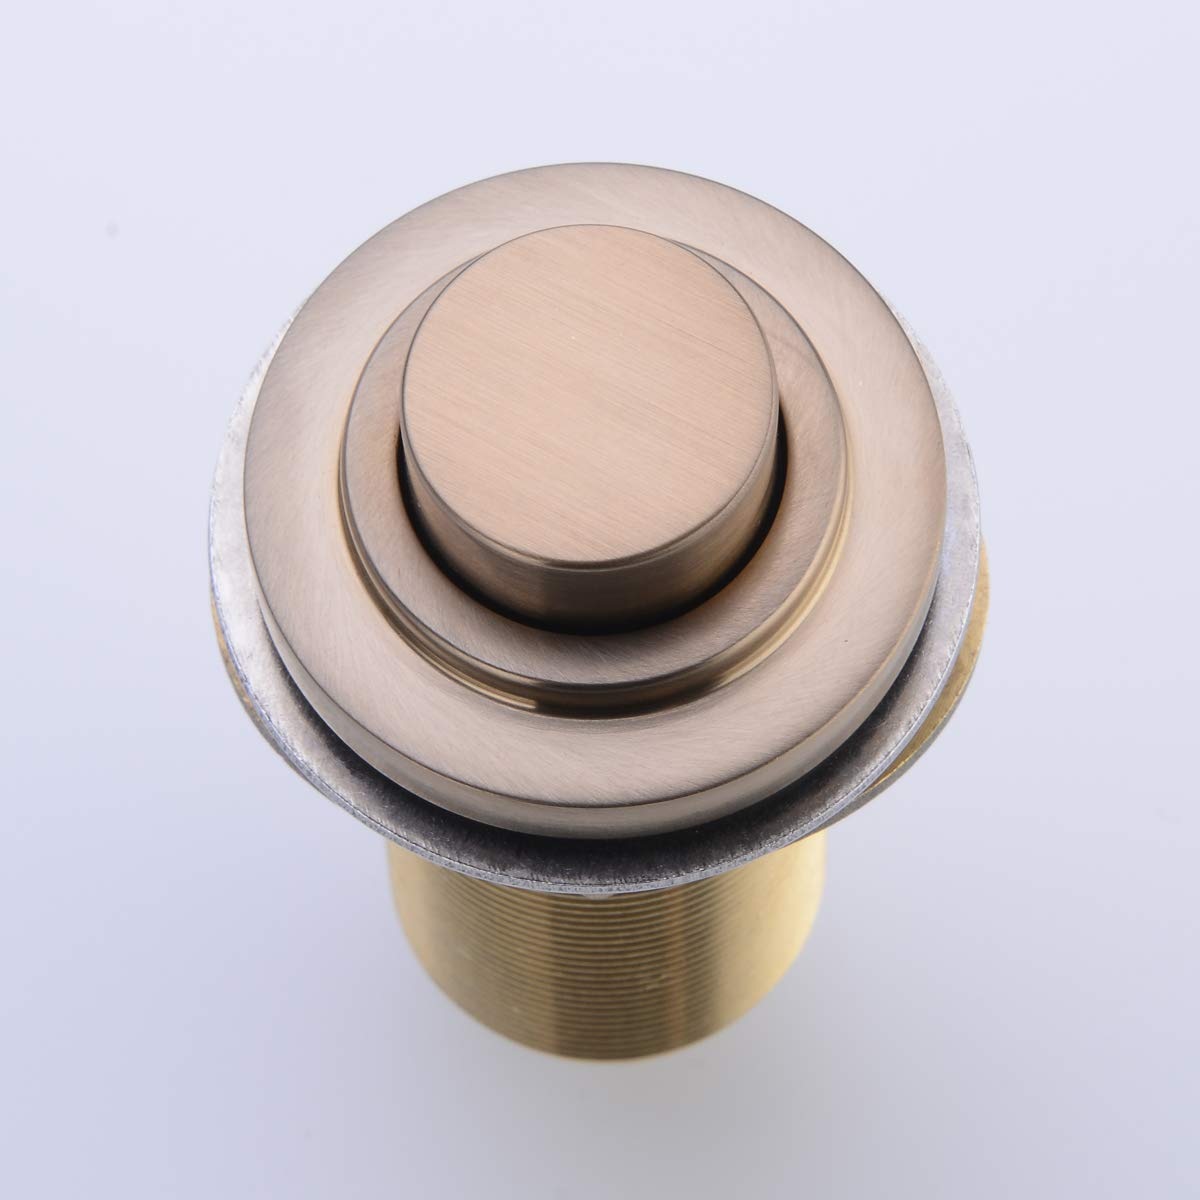 SINKINGDOM SinkTop Air Switch Kit (Full Brass) for Garbage Disposal, Cordless (Champagne Bronze) by SINKINGDOM (Image #2)